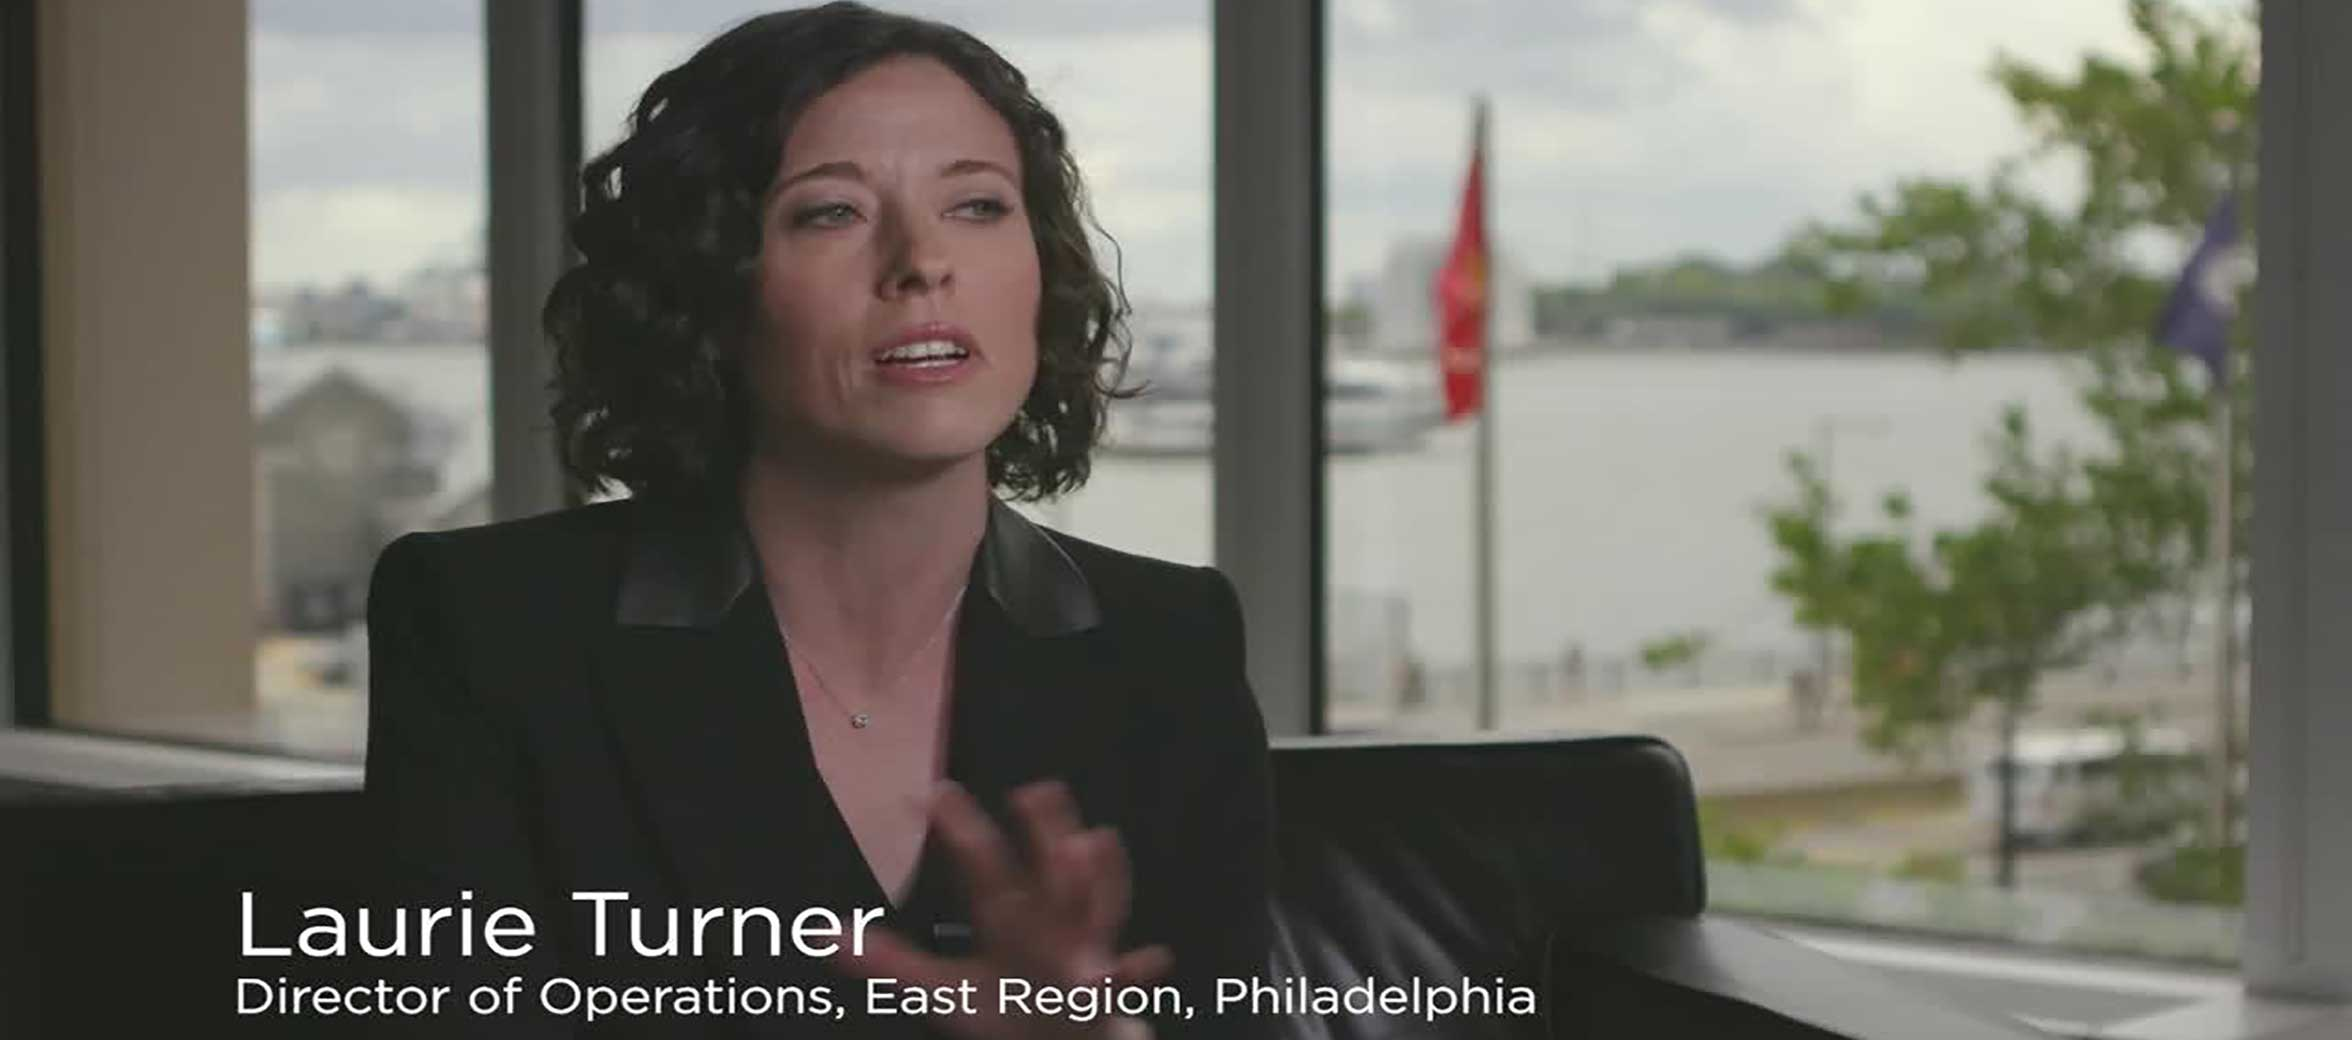 laurie turner video (image)